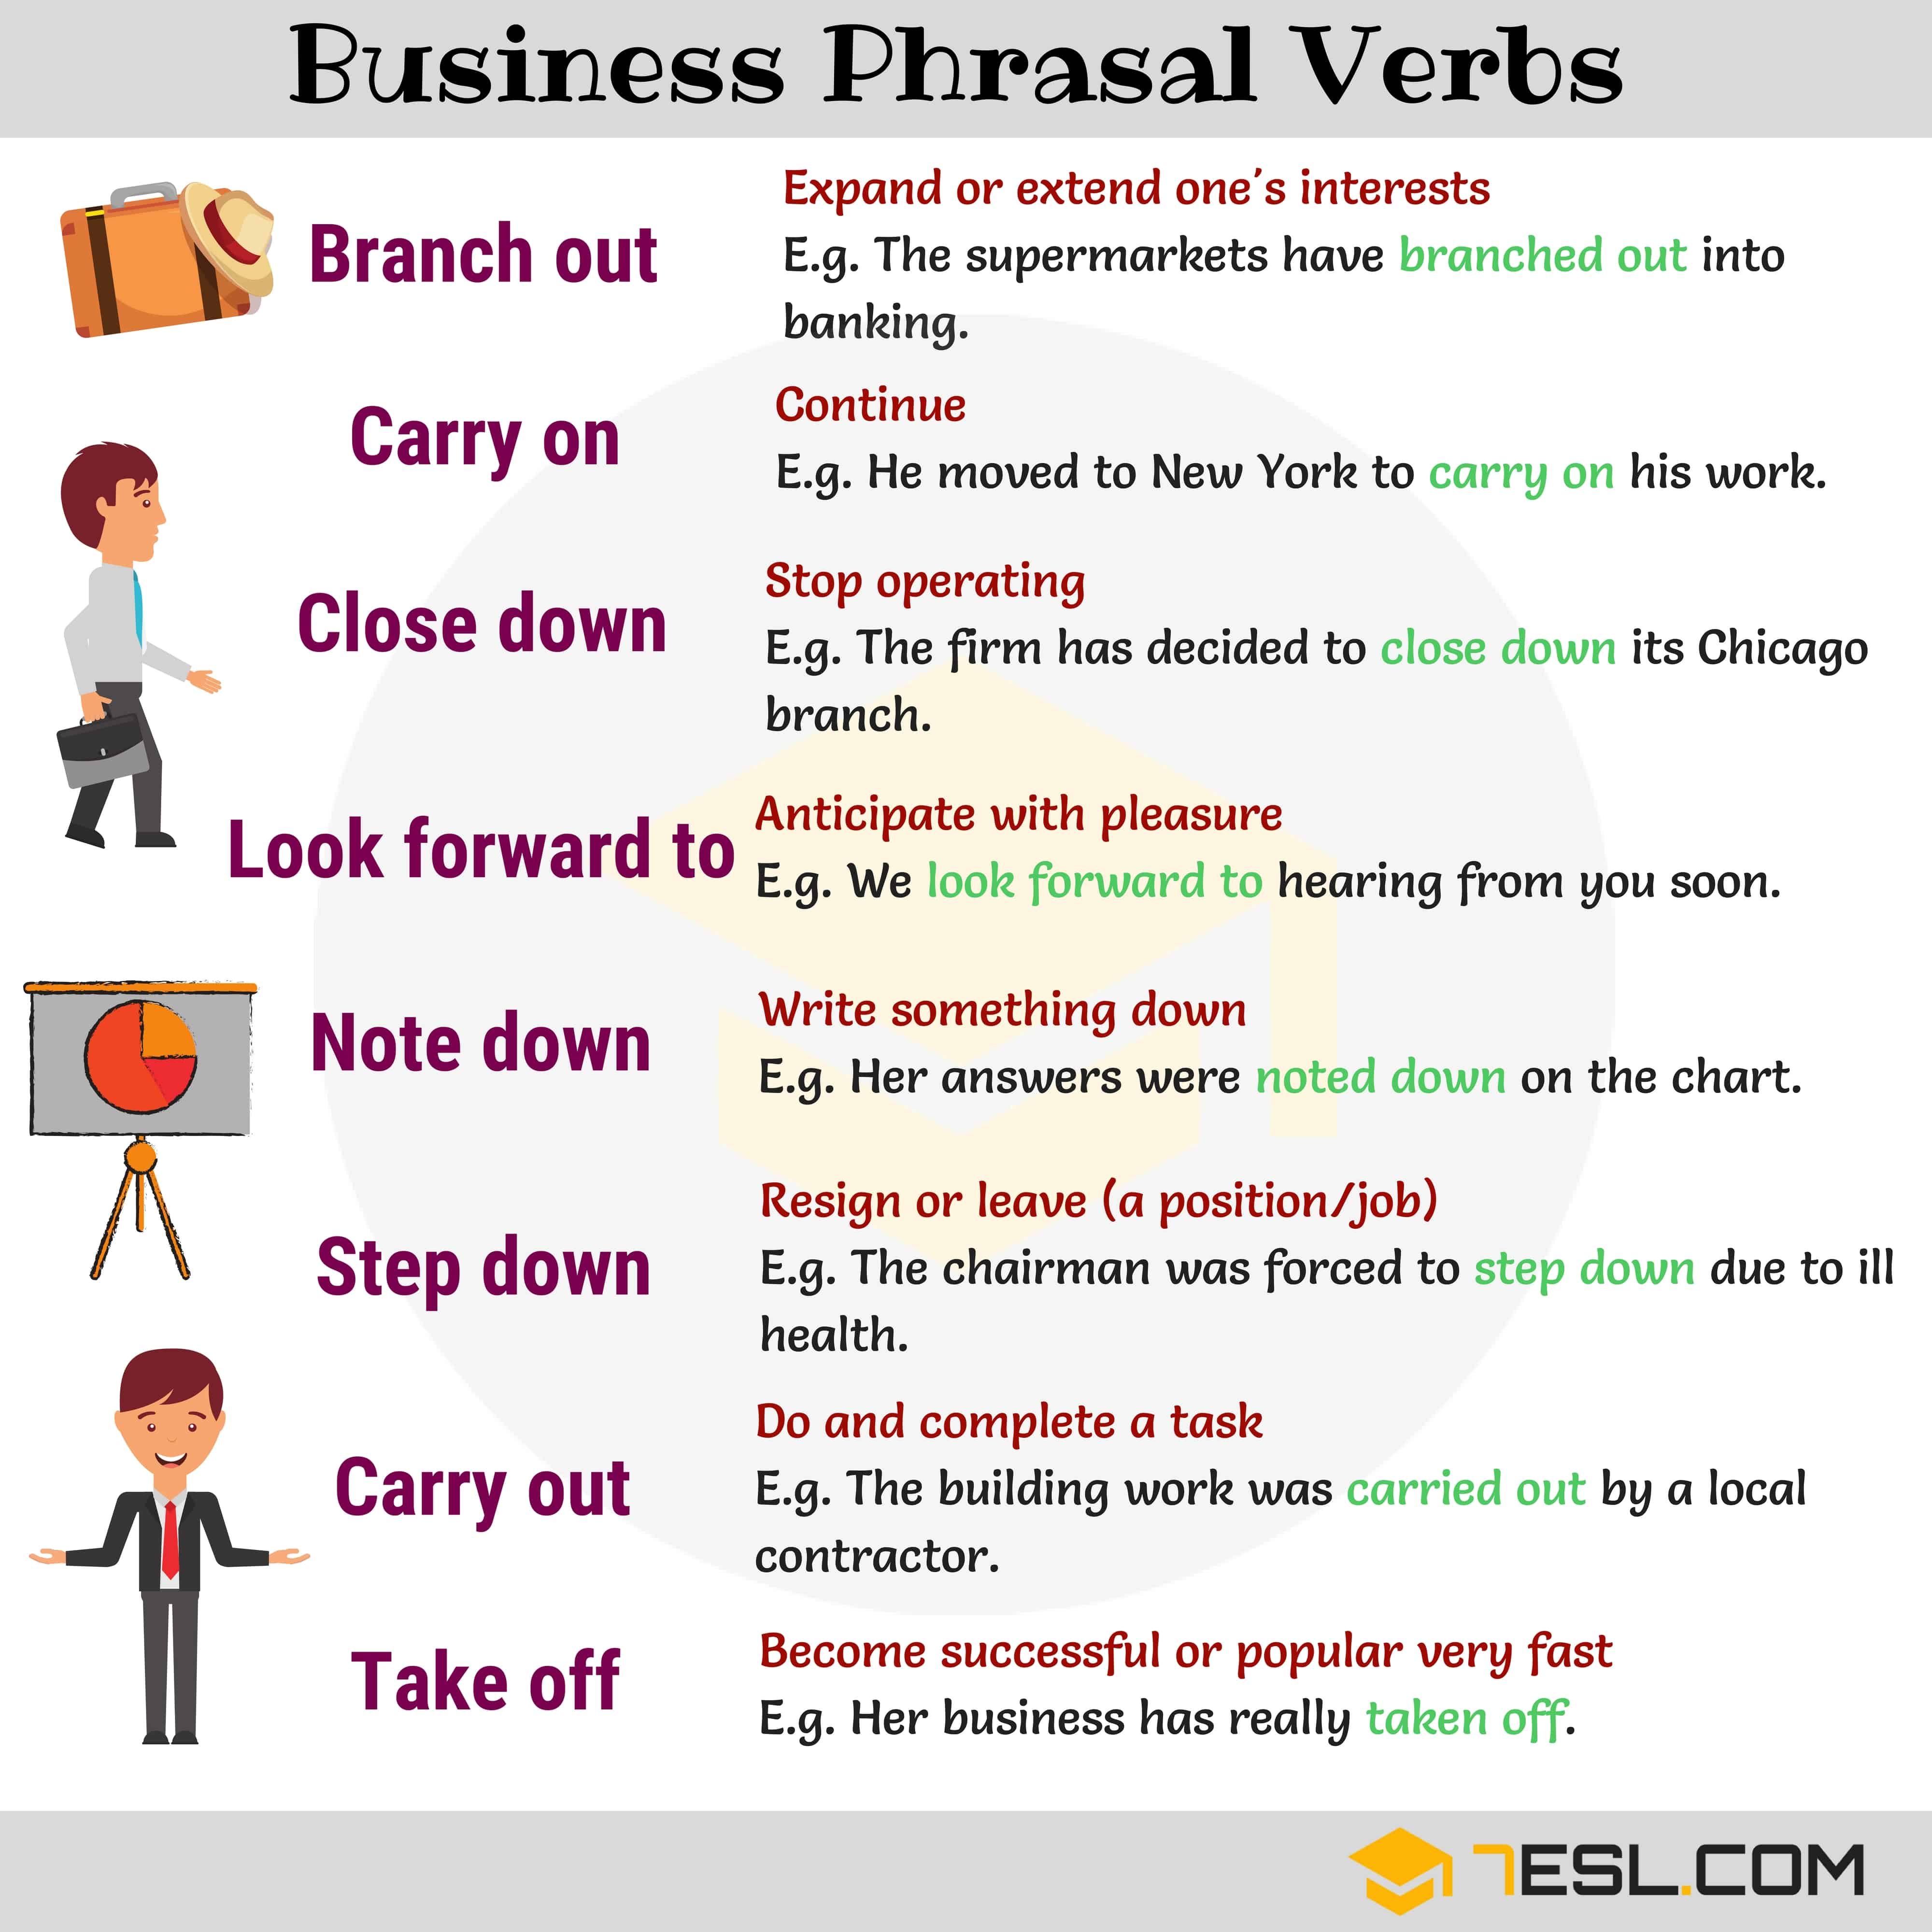 38 Useful Business Phrasal Verbs With Examples